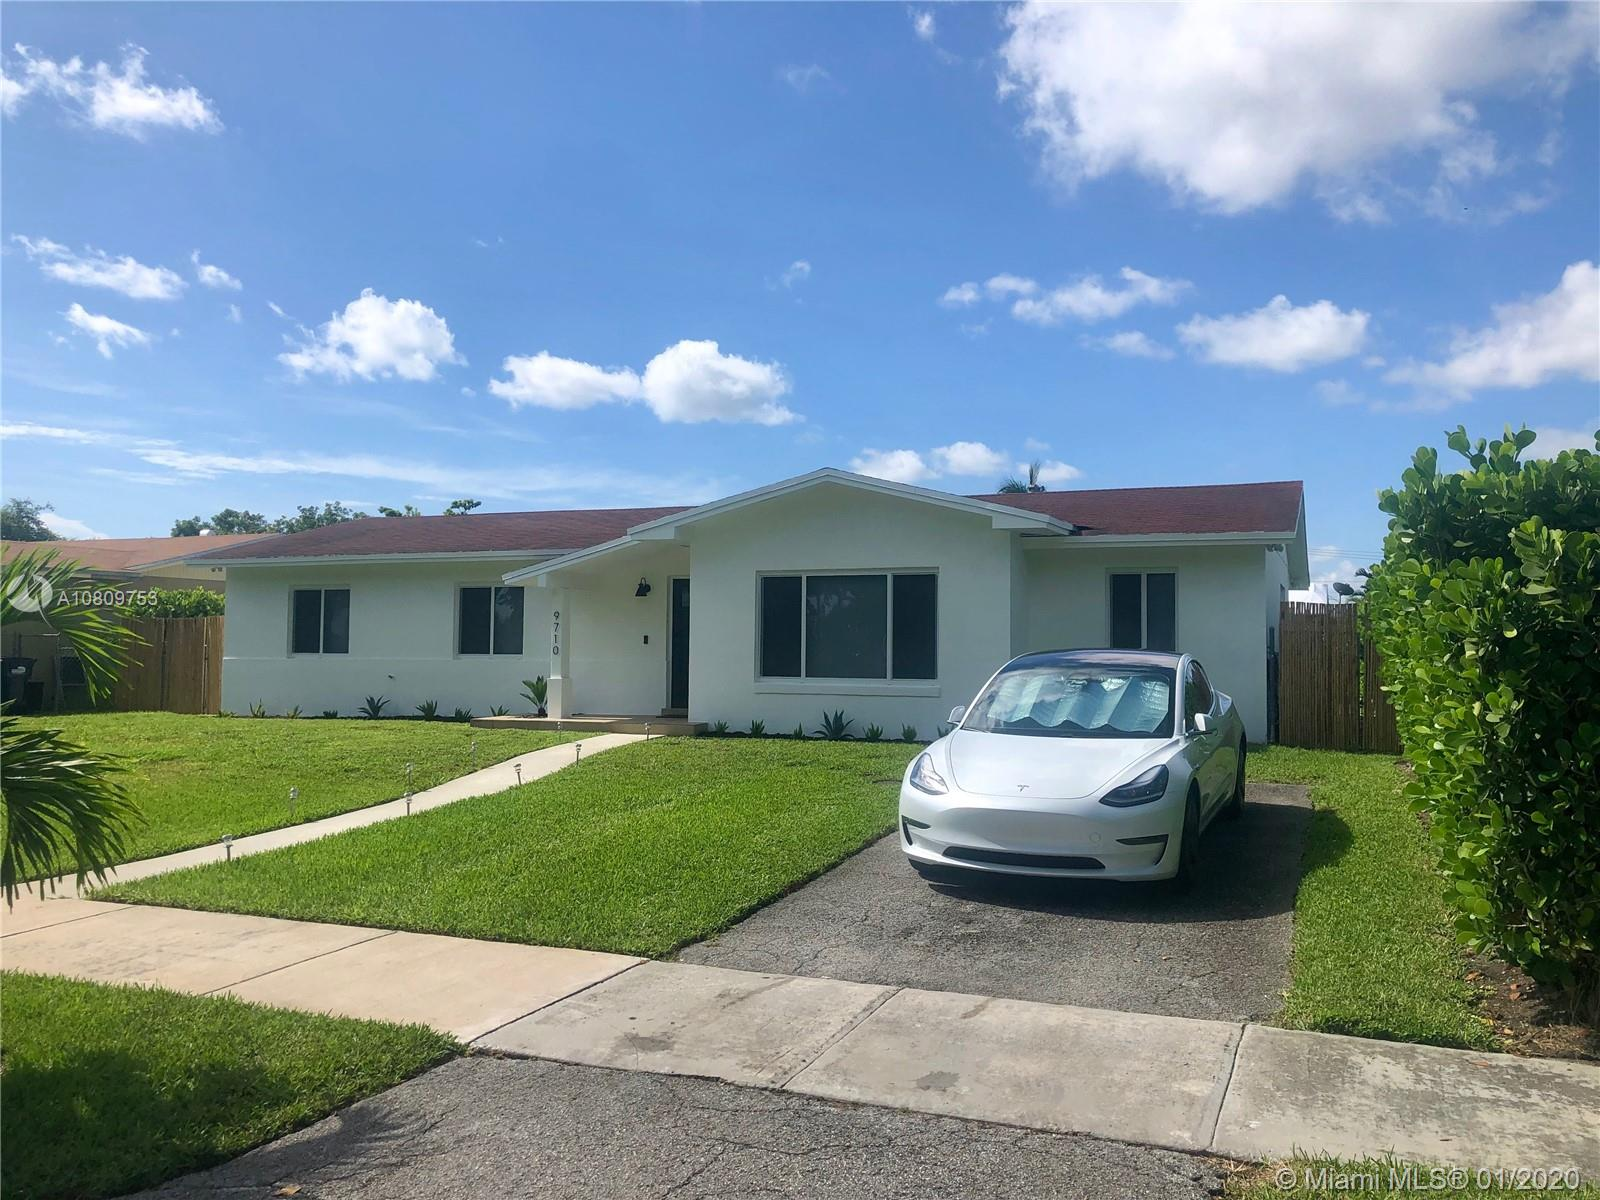 FOR RENT FULLY REMODELED SINGLE FAMILY HOME. Located in CUTLER BAY. Walking distance to shops, restaurants, park and schools, close to Old Cutler Road, Black Point Marina. 3 bedroom 2 bathroom, tile throughout, wood floors in bedrooms. Large yard, new kitchen with granite tops & stainless steel appliances. Full size washer/dryer included. Impact windows and doors. Plenty of parking space. No HOA. Unfurnished. Internet included. Minimum rental is 1 year. Pets under 20 pounds will be considered.